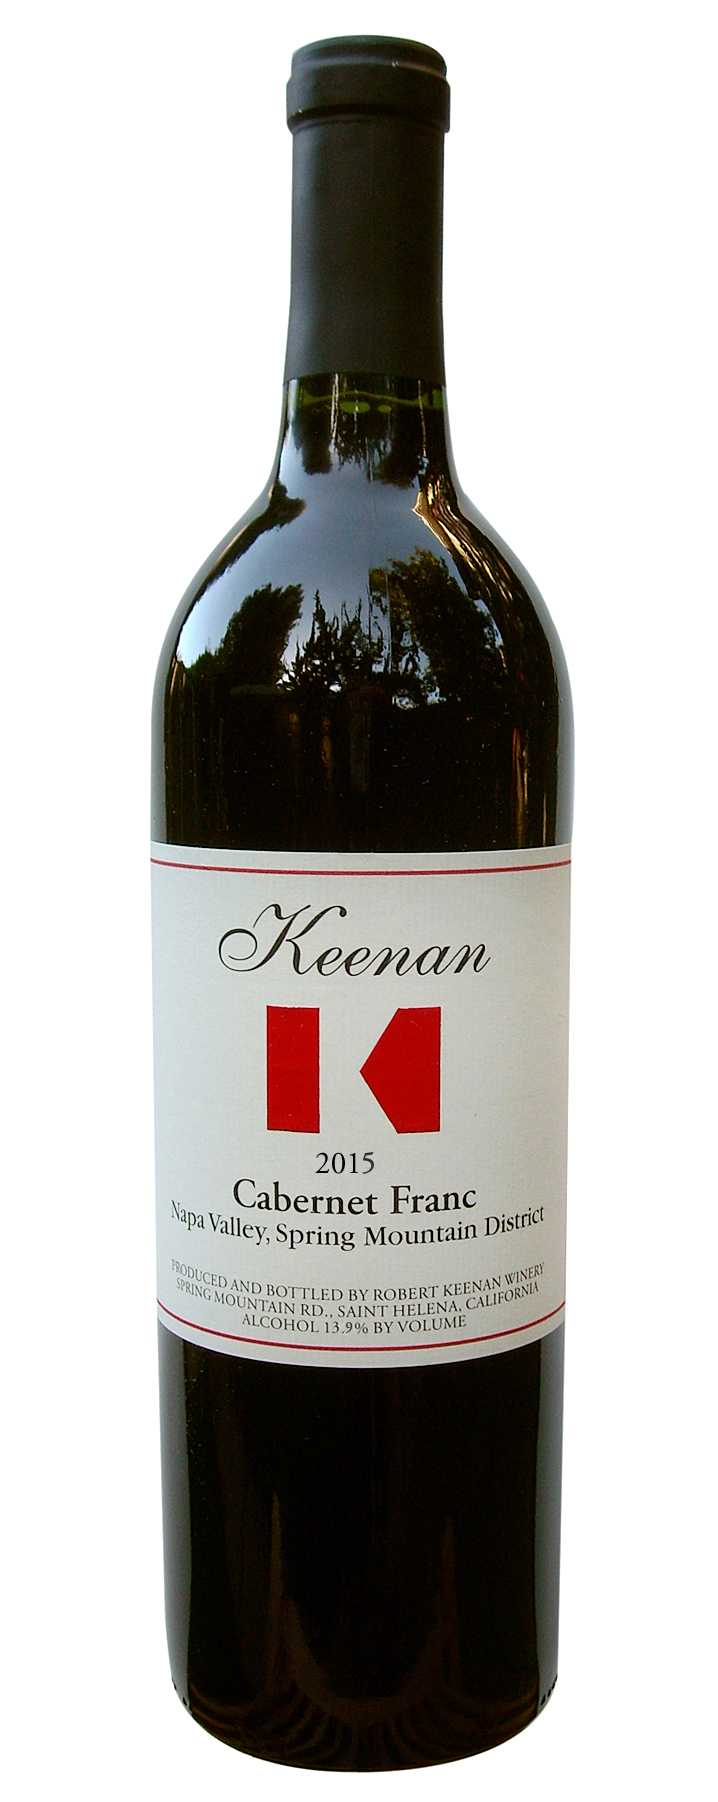 2015 Cabernet Franc, Spring Mountain District